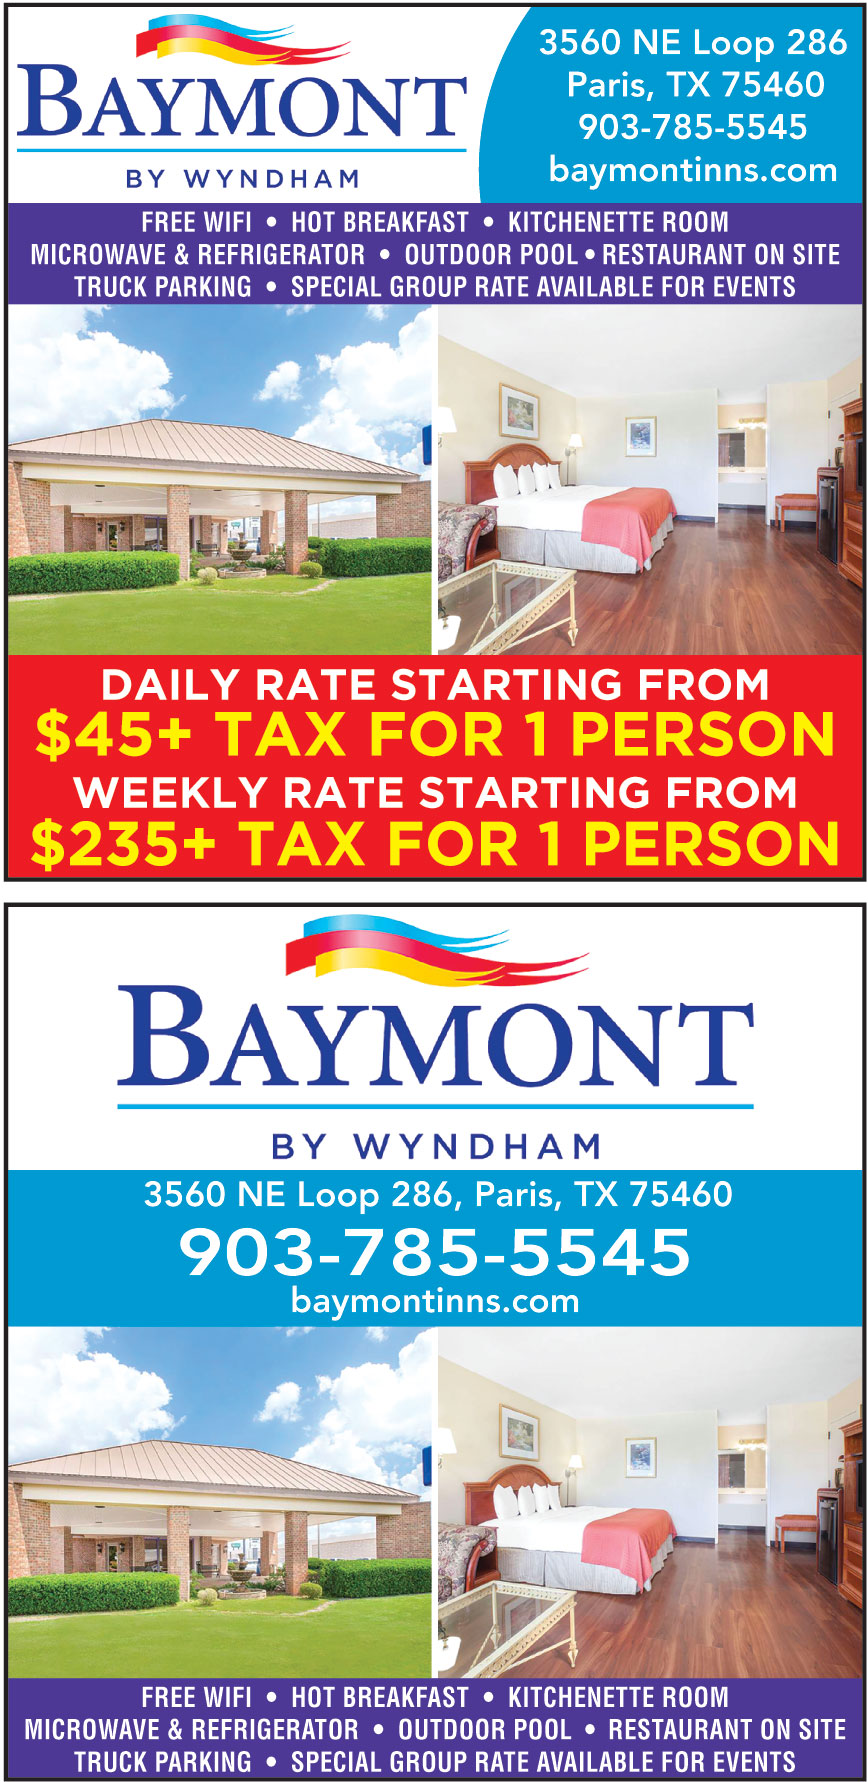 BAYMONT BY WYNDHAM PARIS